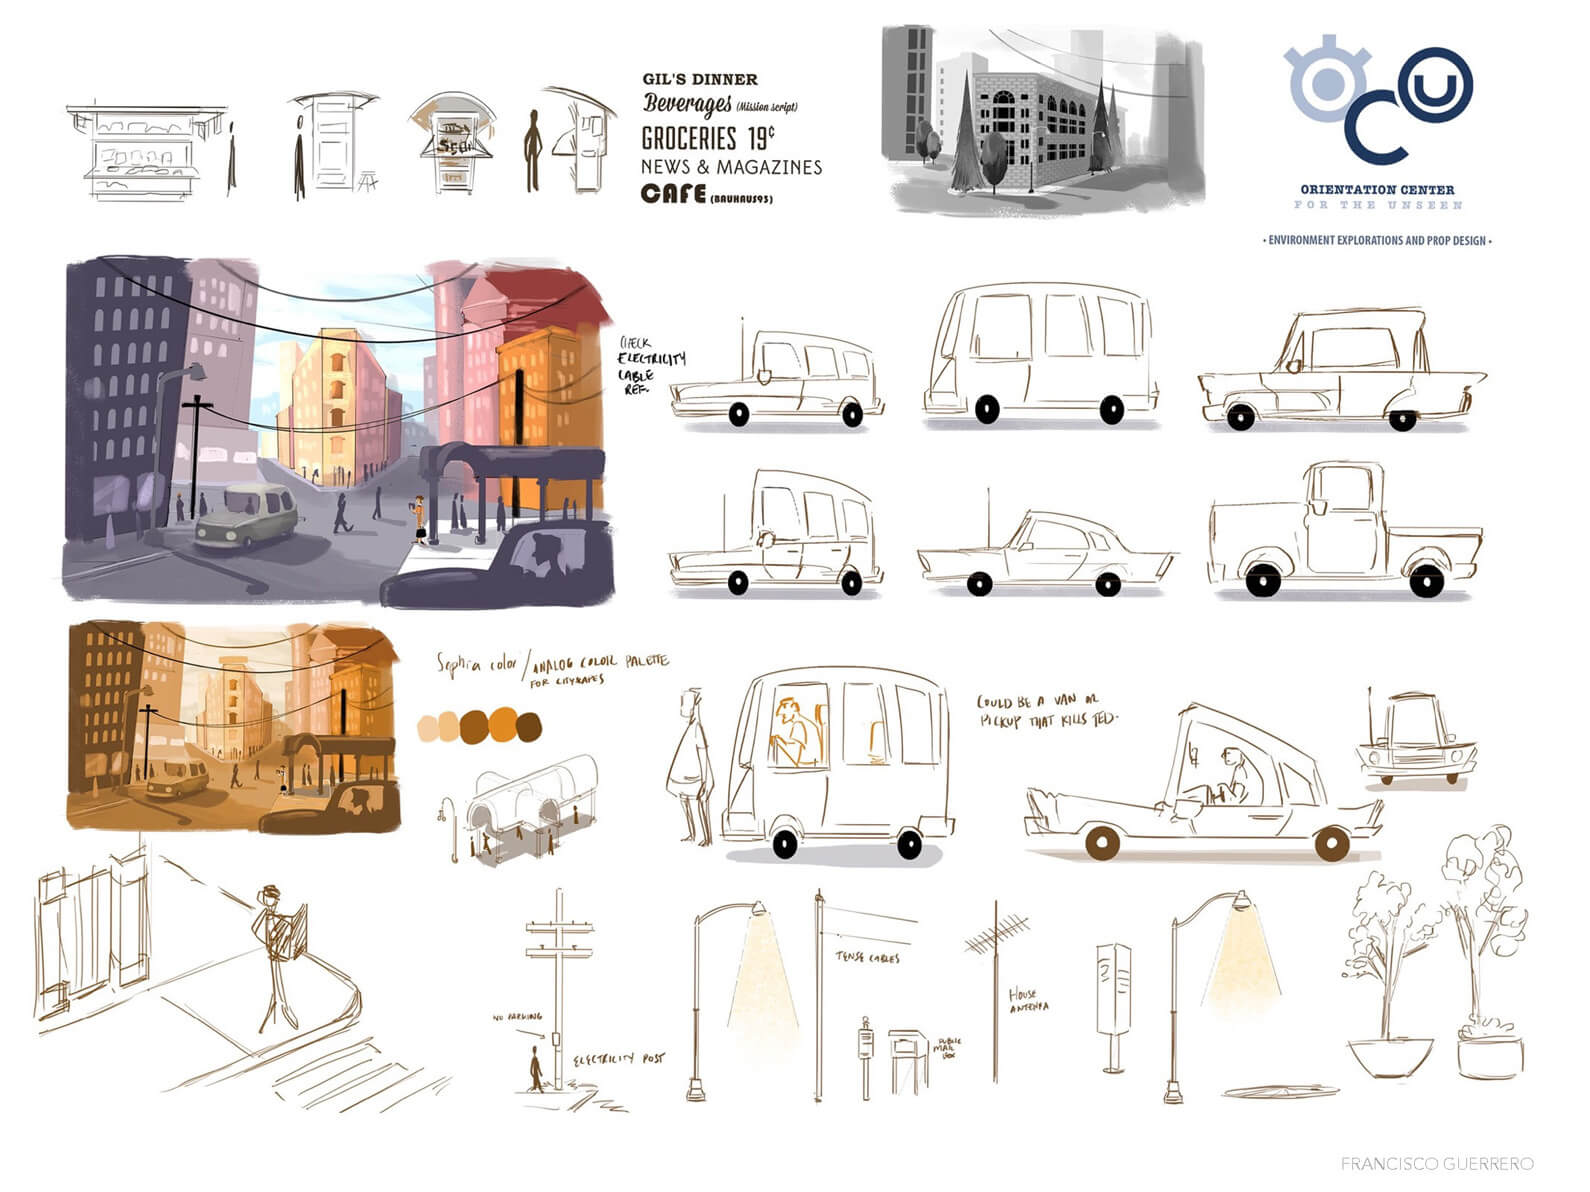 Environment and prop concept sketches for cars and street setting of Orientation Center for the Unseen